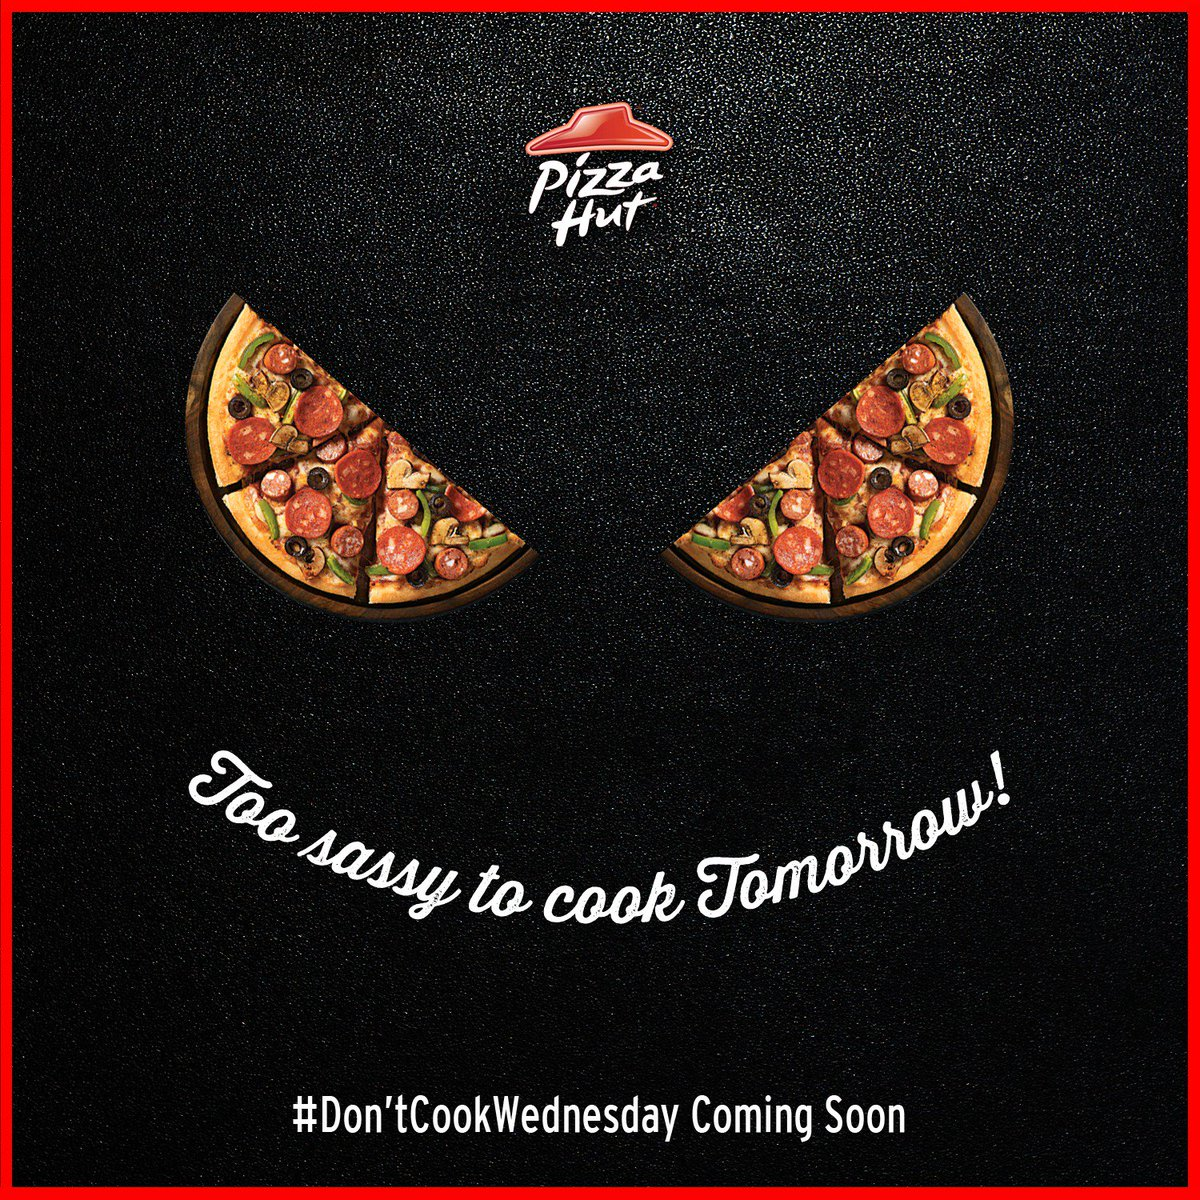 No cooking woes to trouble you tomorrow Be ready for DontCookWednesday. ThinkPizzaThinkPizzaHut https t.co 6pEBQRXphg